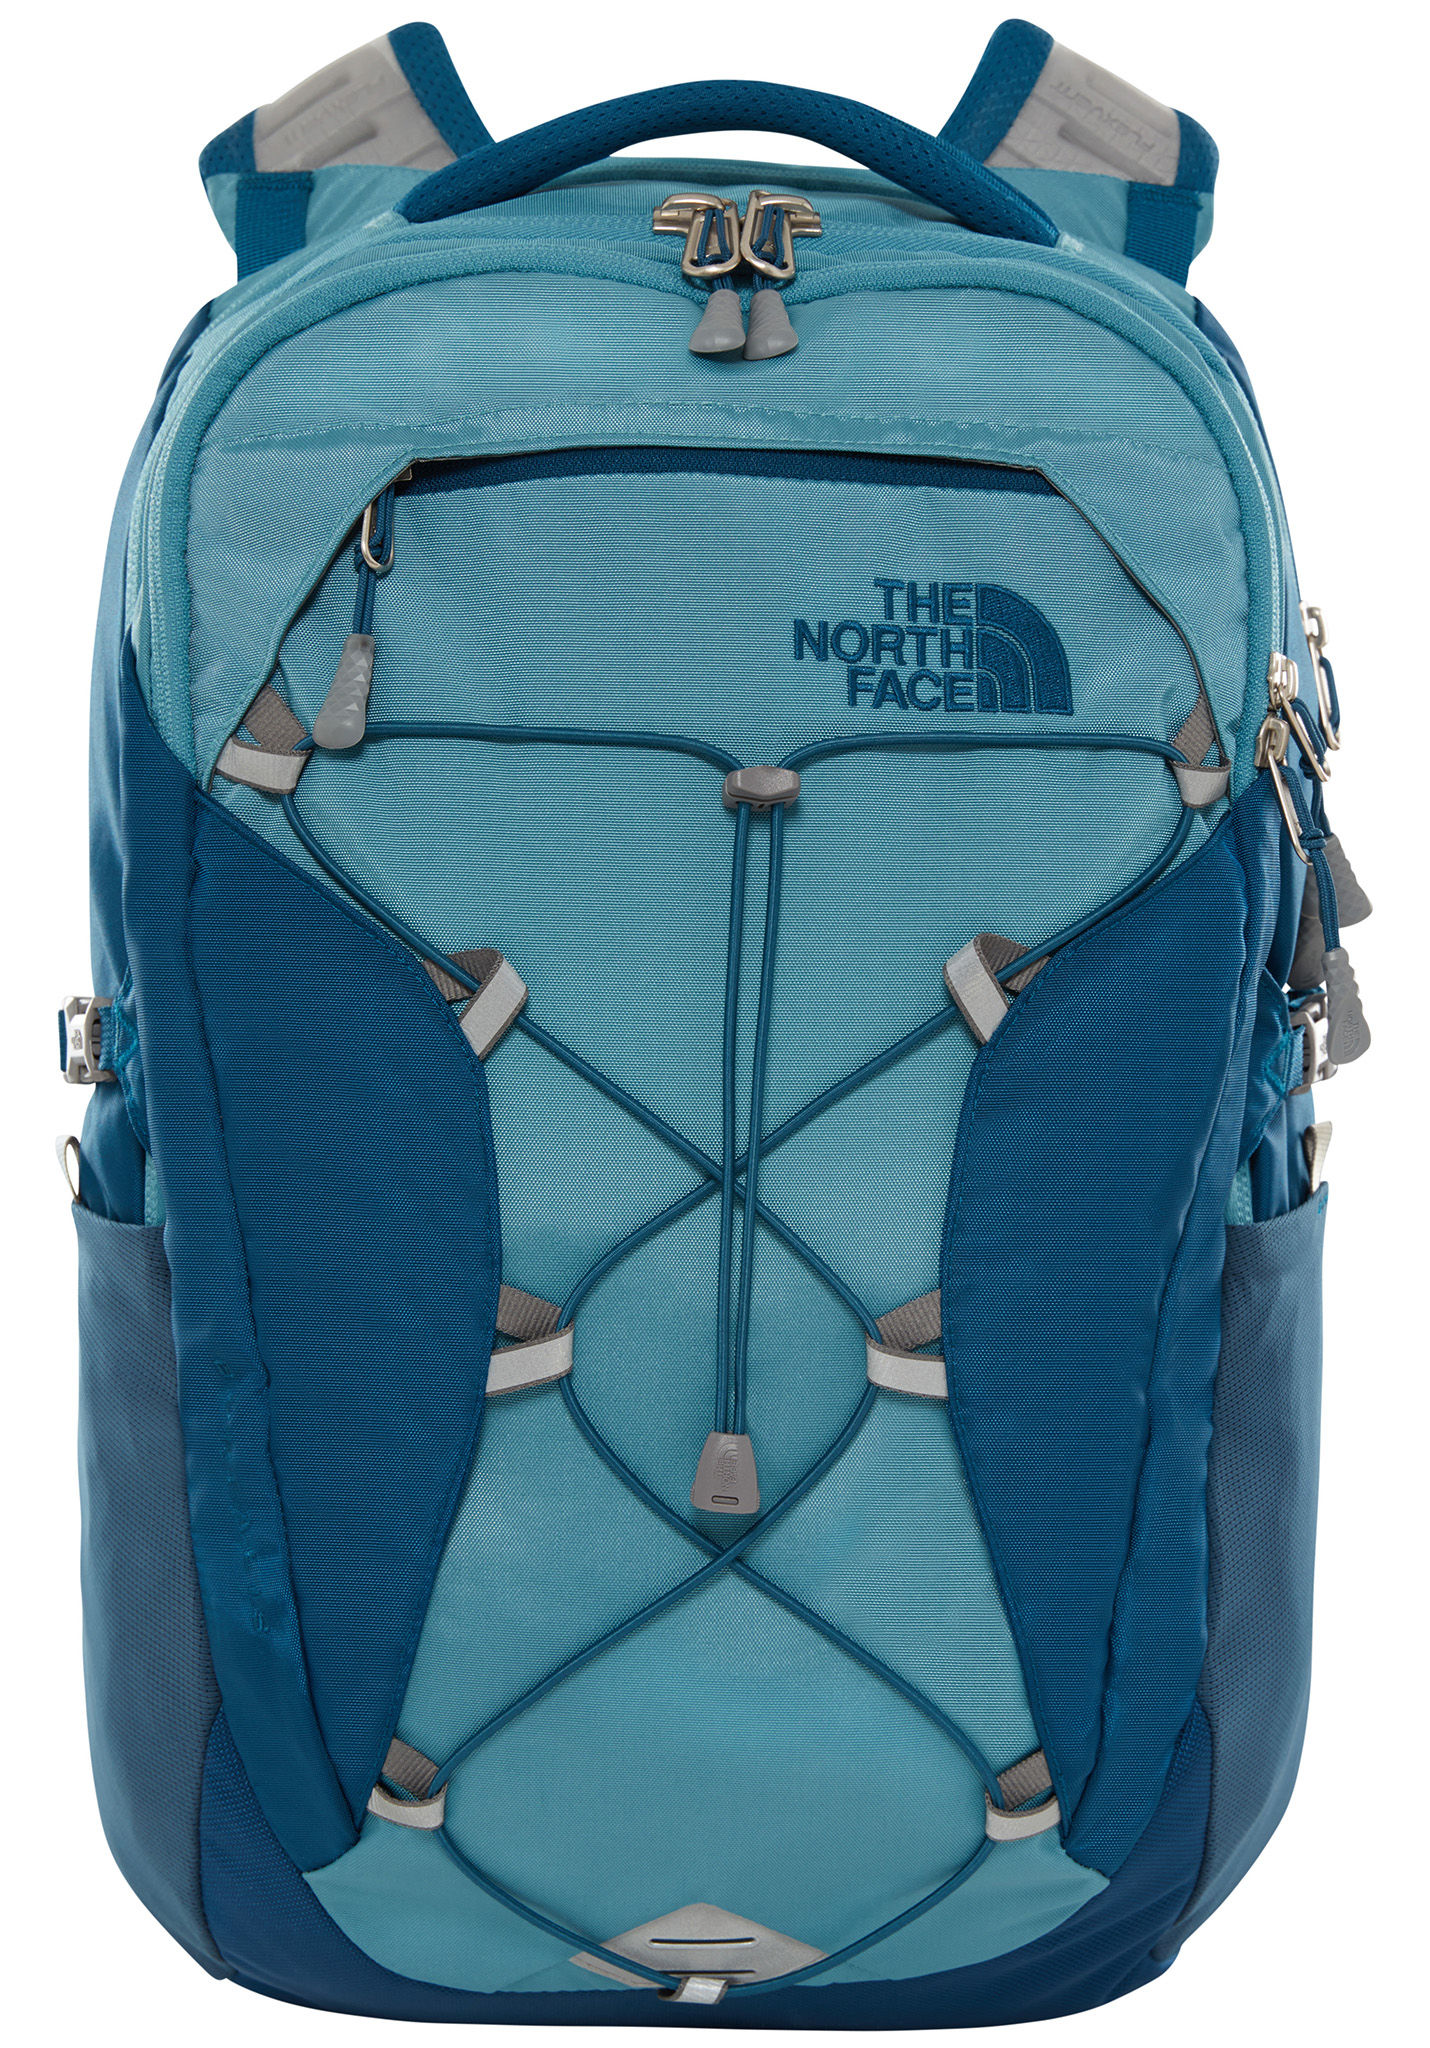 5305138da THE NORTH FACE Borealis 28L - Backpack for Women - Blue